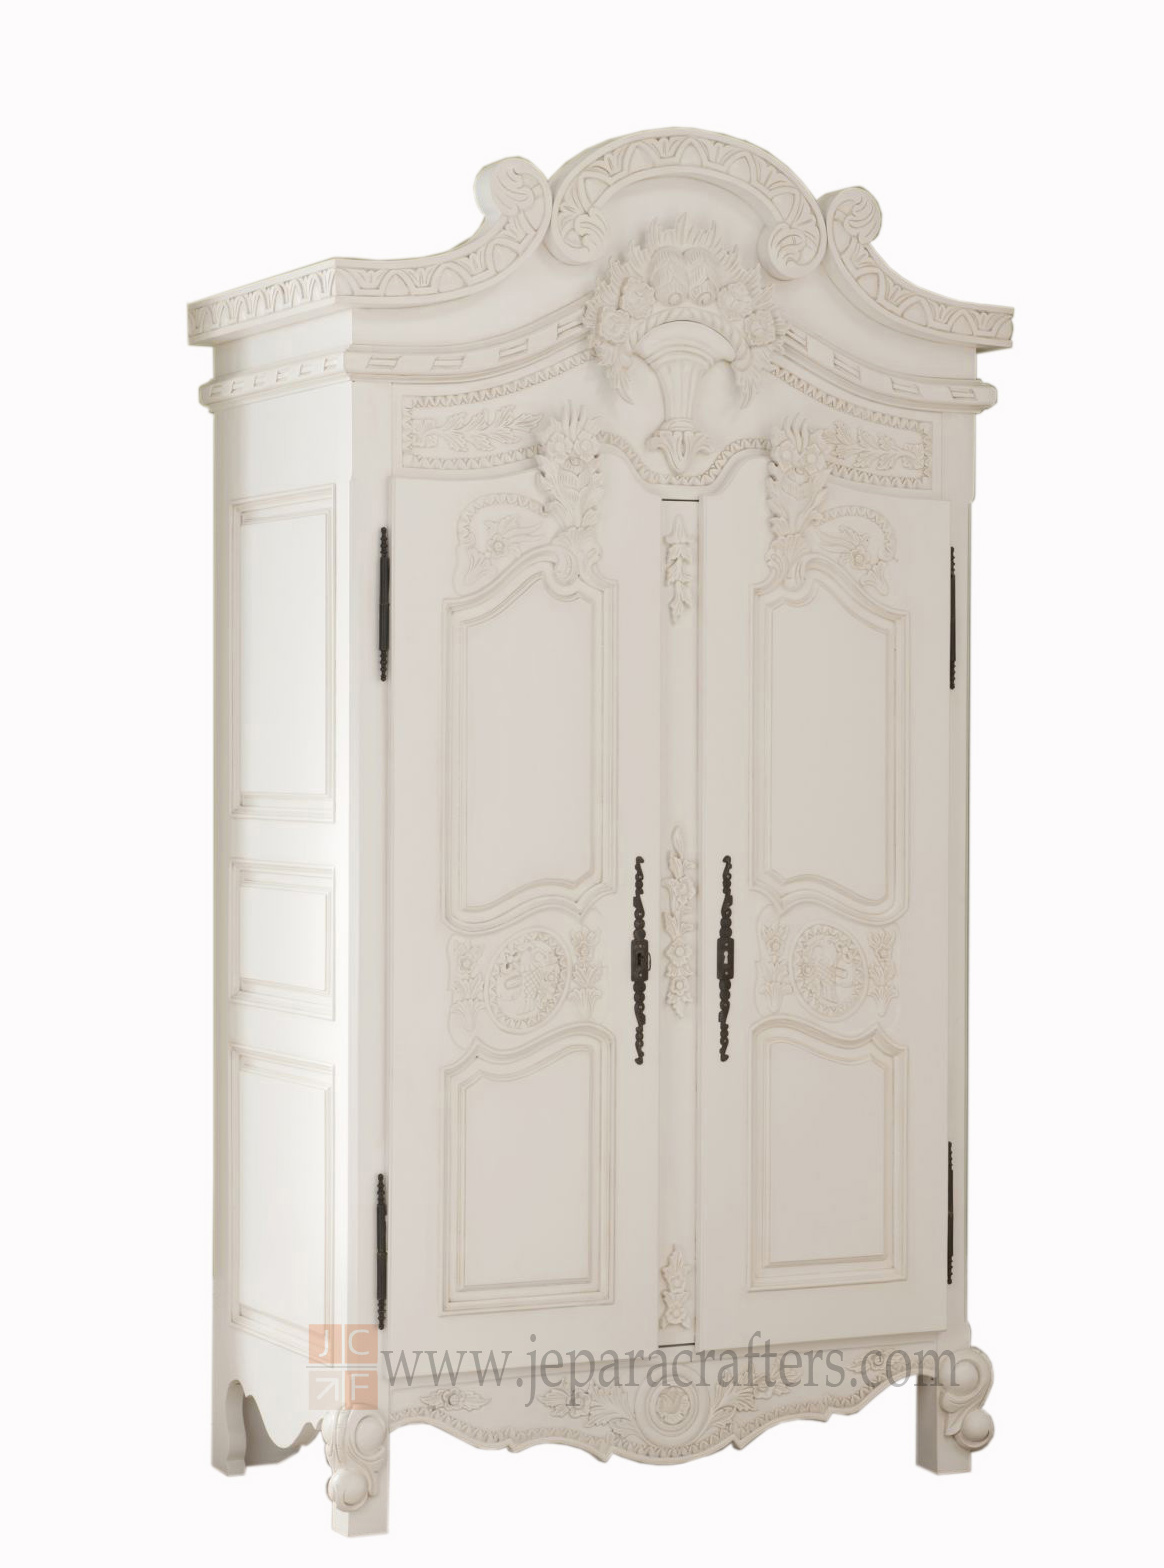 Romeesa Armoire 2 Doors Hard Carved FS AW007